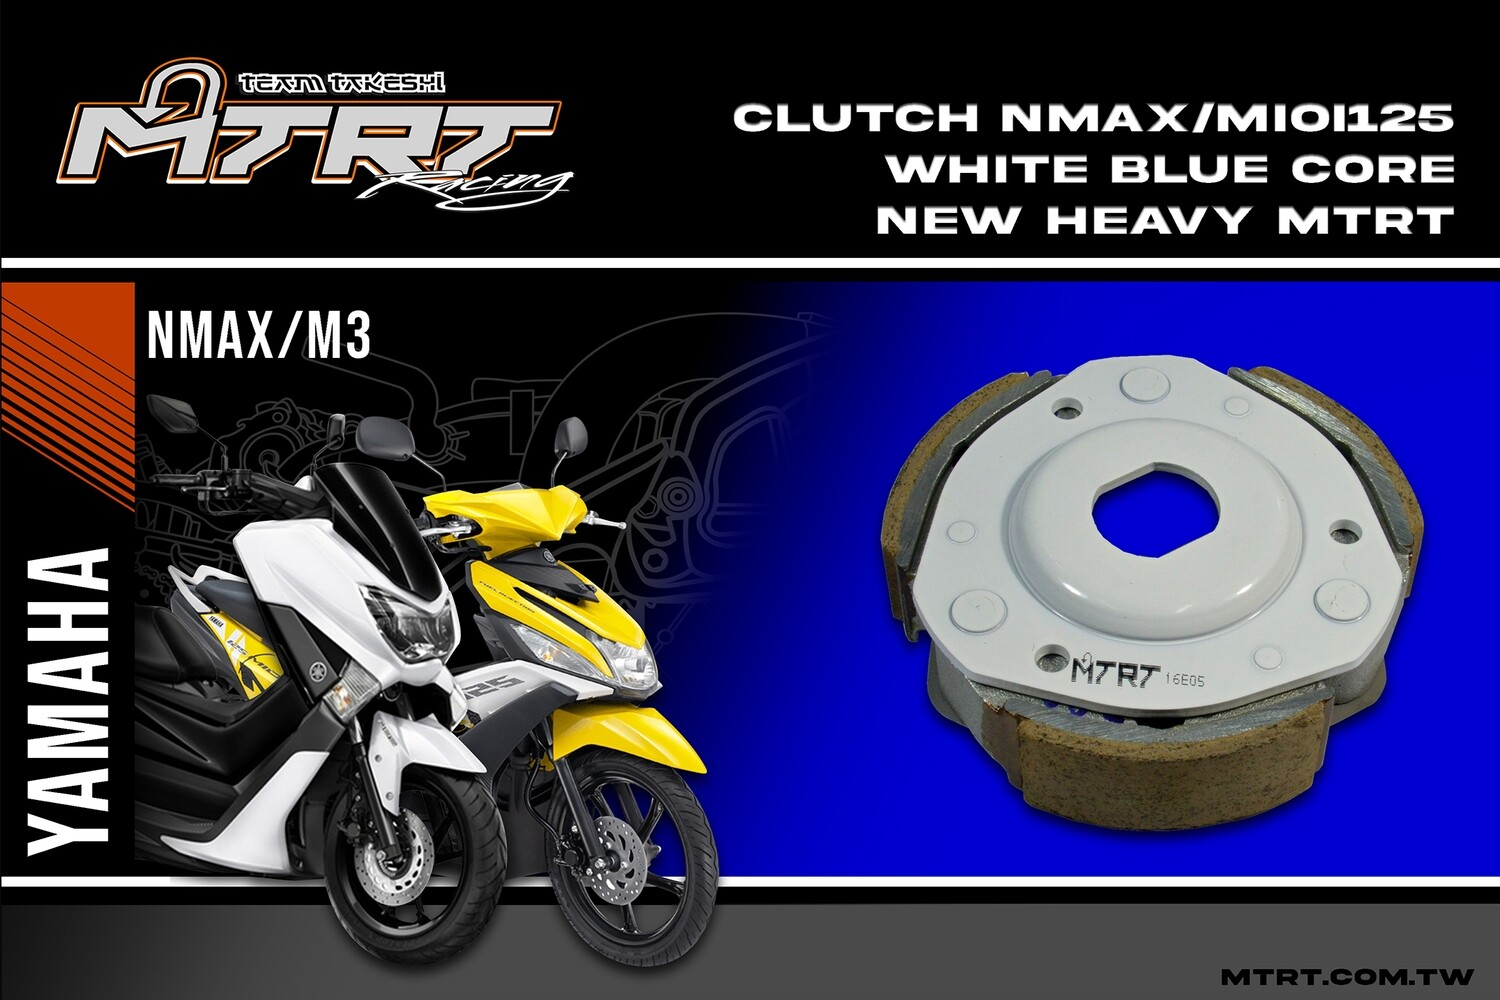 CLUTCH NMAX-SMAX-MIOi125 WHITE  blue core HEAVY MTRT